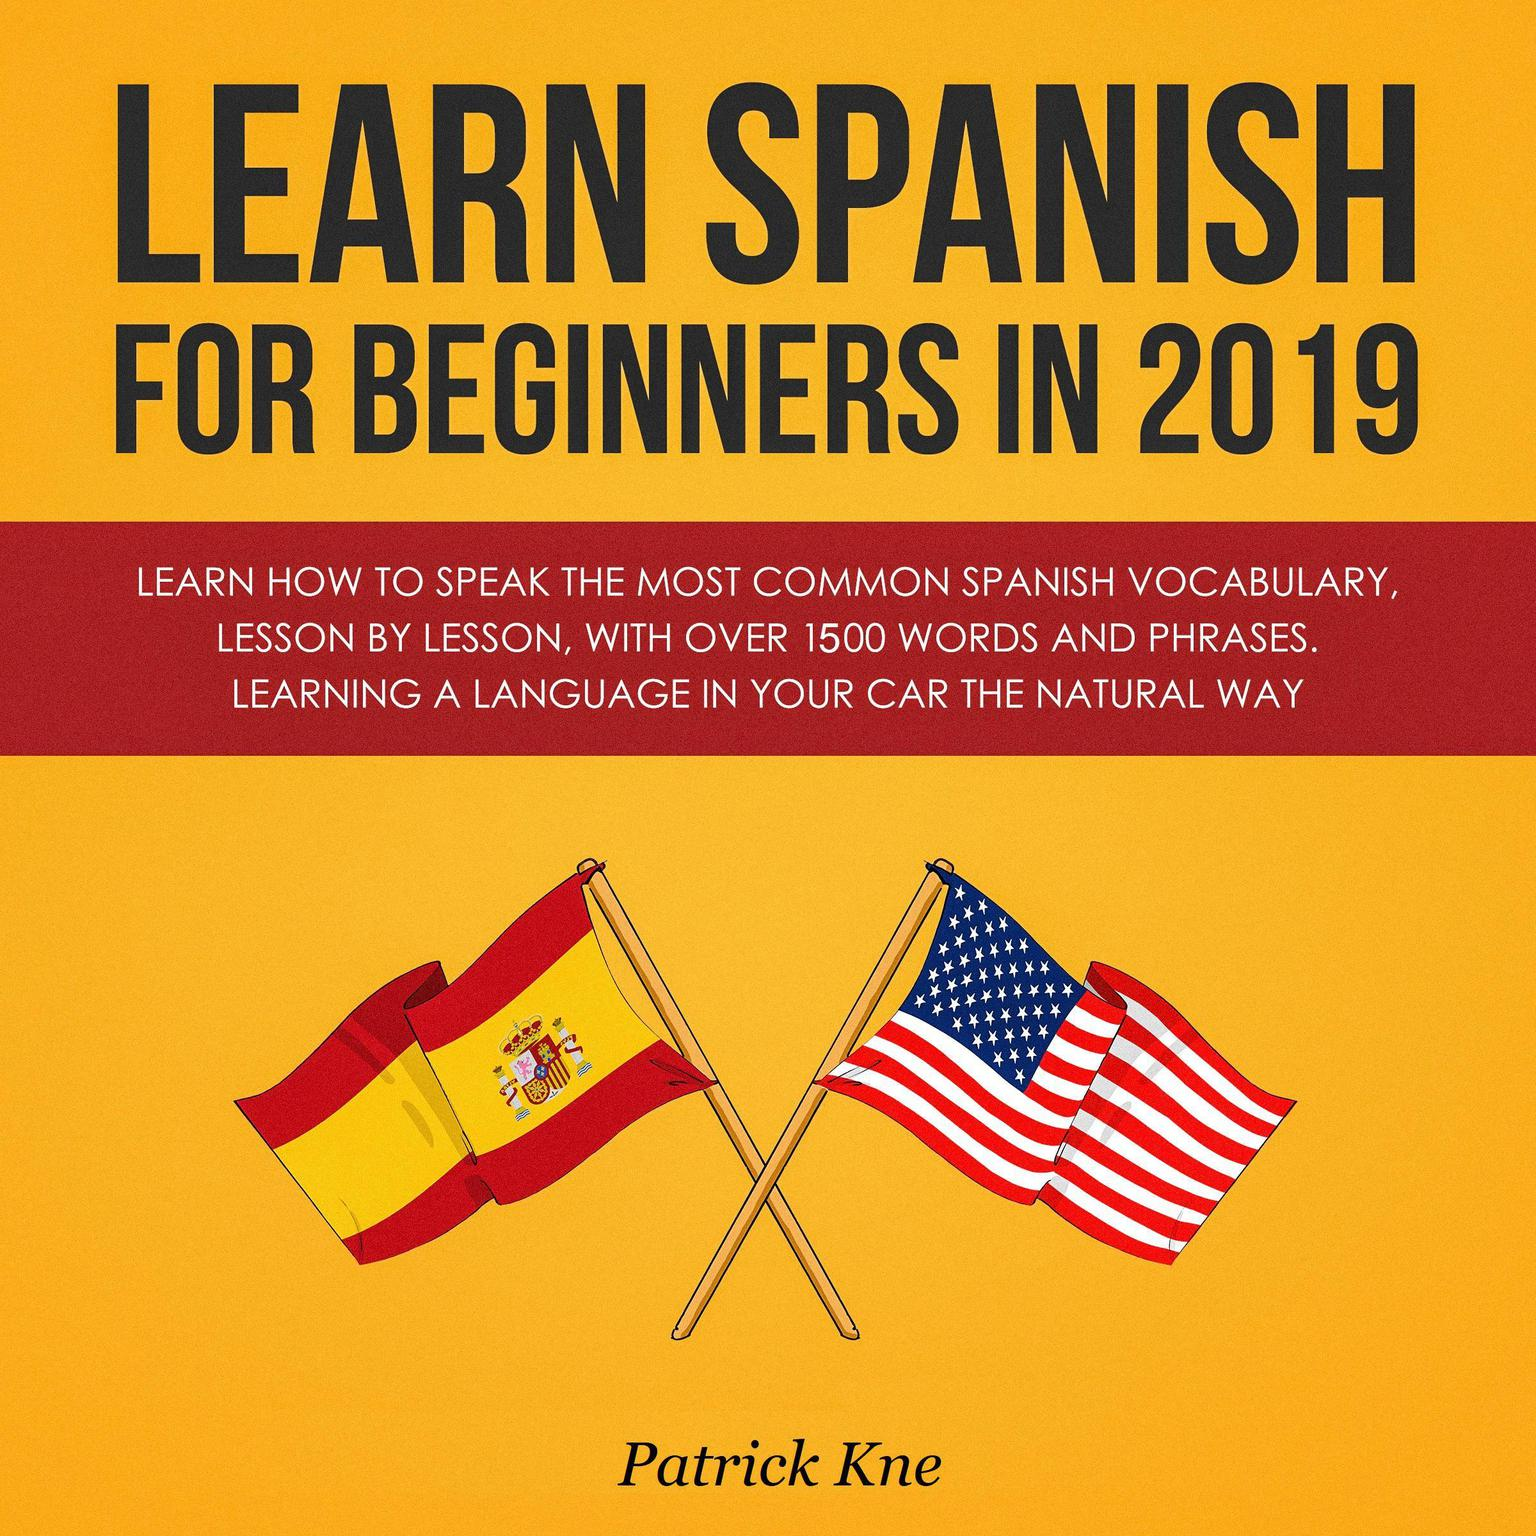 Printable Learn Spanish for Beginners in 2019: Learn How to Speak the Most Common Spanish Vocabulary, Lesson by Lesson, with Over 1500 Words and Phrases. Learning a Language in Your Car the Natural Way: Learn How to Speak the Most Common Spanish Vocabulary, Lesson by Lesson, with Over 1500 Words and Phrases. Learning a Language in Your Car the Natural Way Audiobook Cover Art